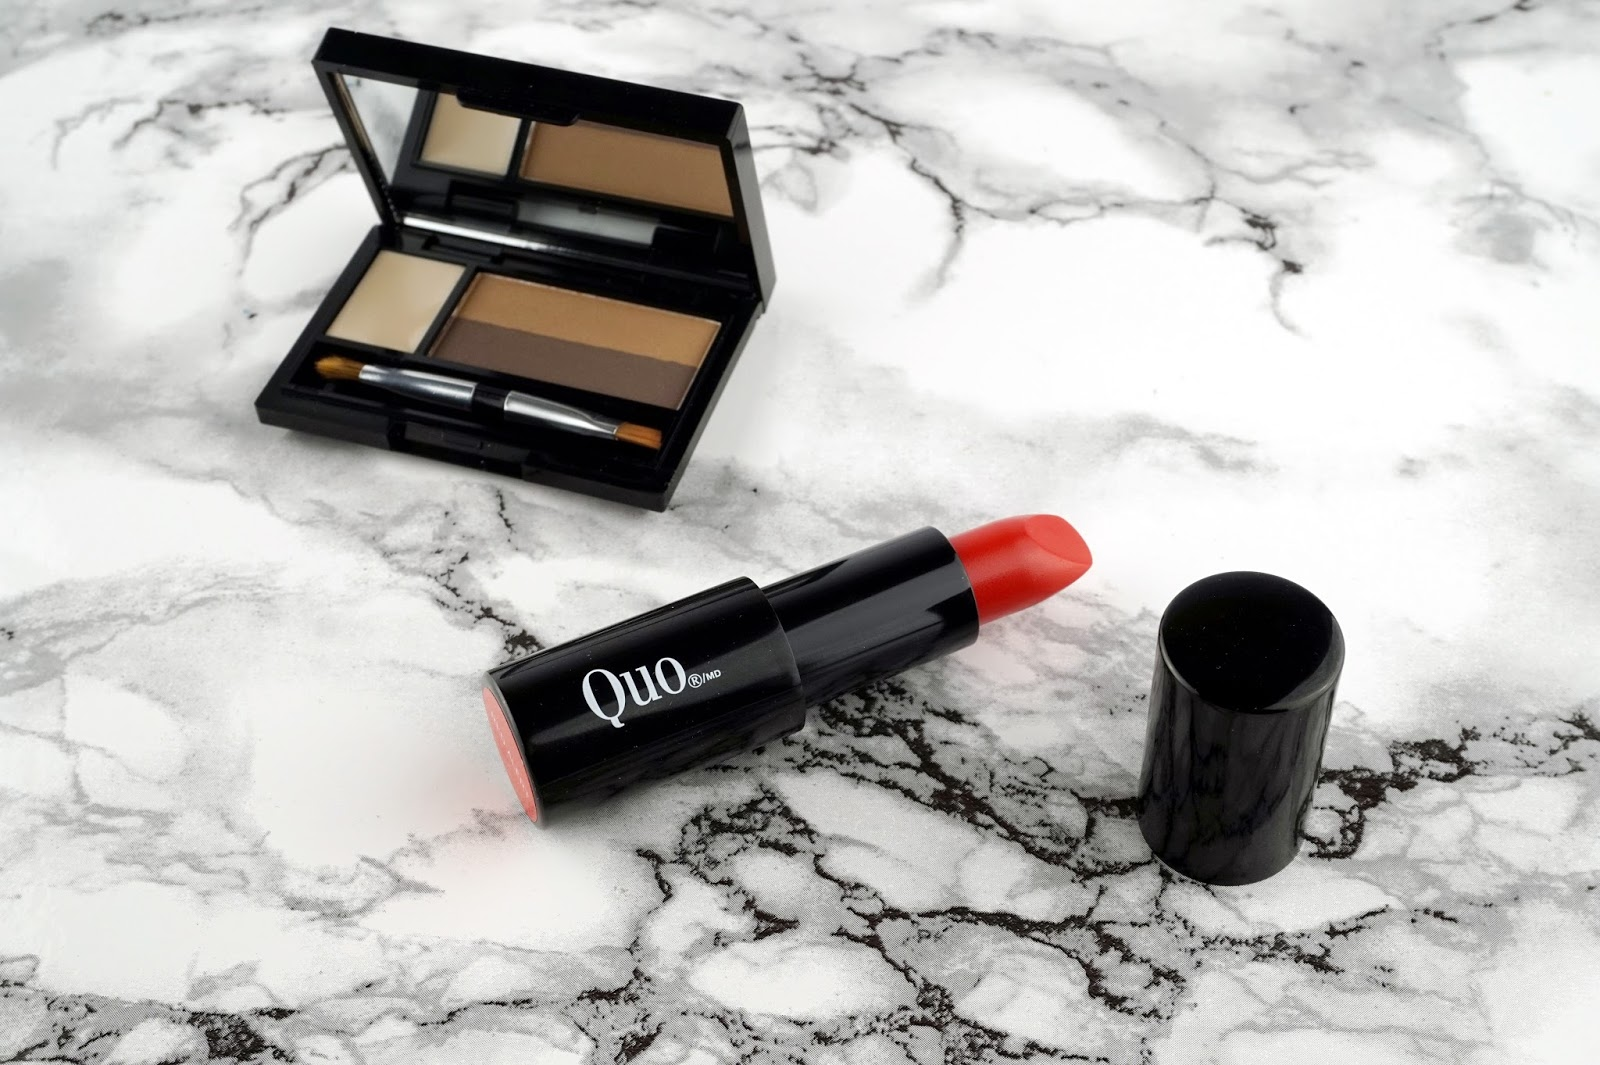 quo cosmetics fall 2016 collection eyebrow palette red alert lipstick